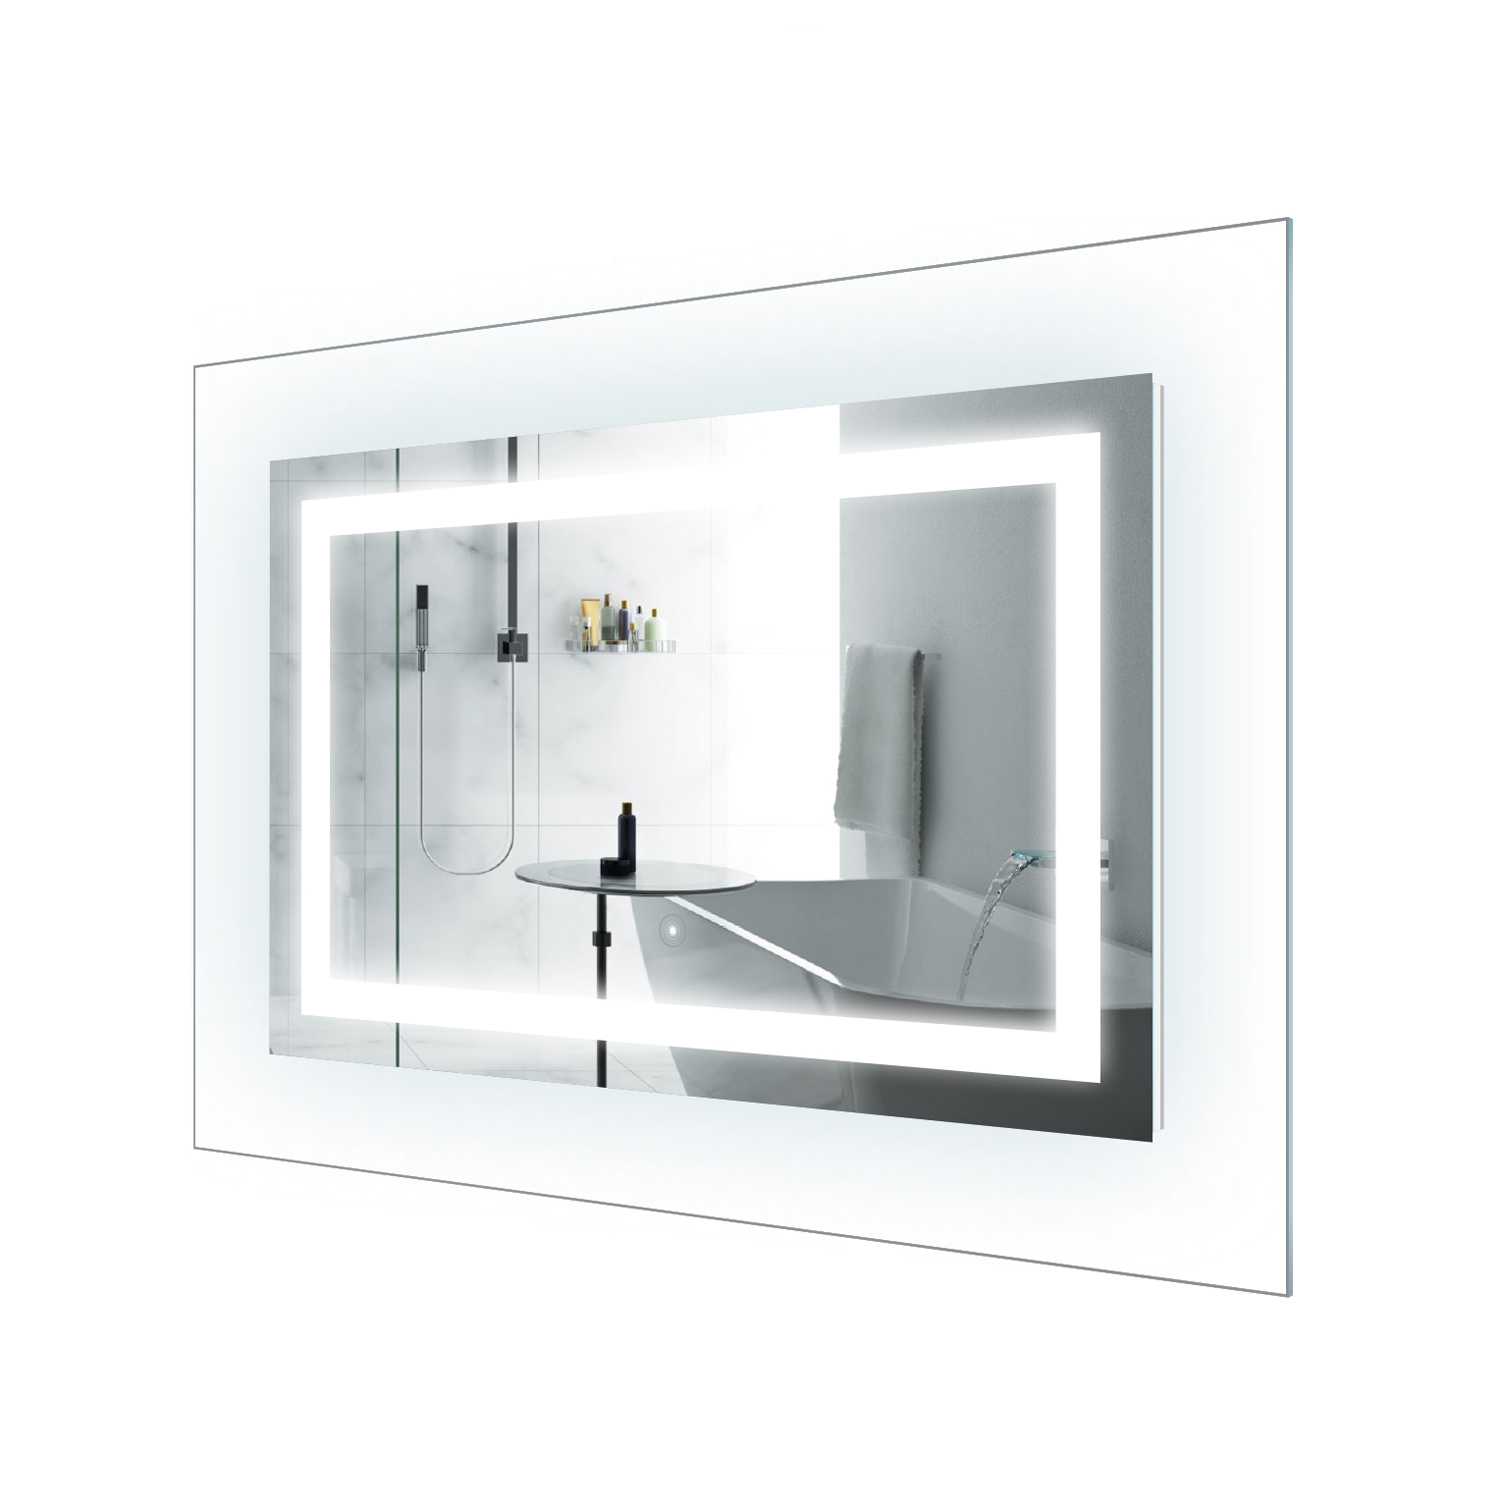 LED Lighted 42 Inch x 30 Inch Bathroom Mirror With Glass